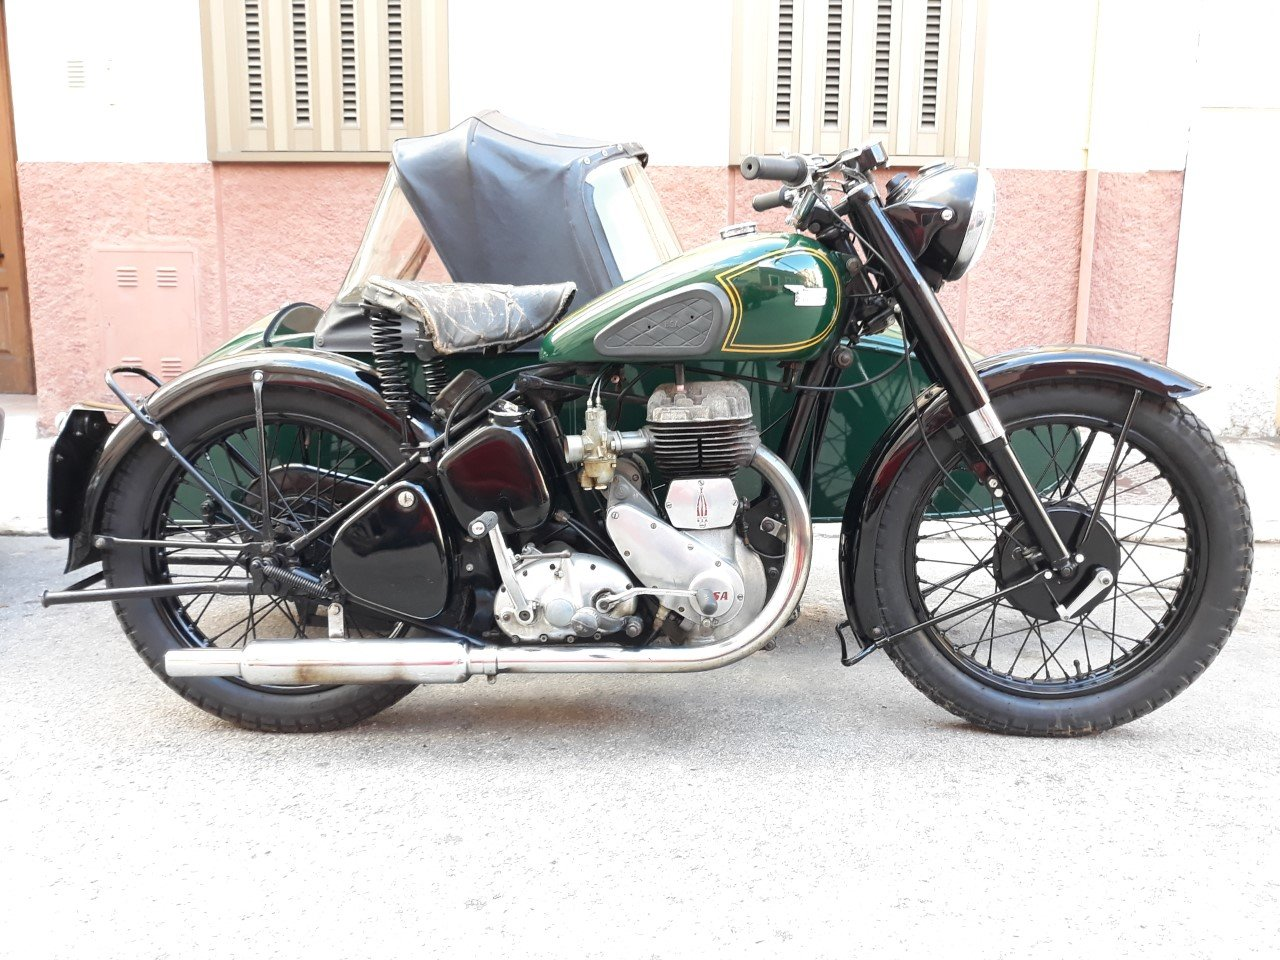 BSA M21  600cc. with BSA sidecar - UK plates.